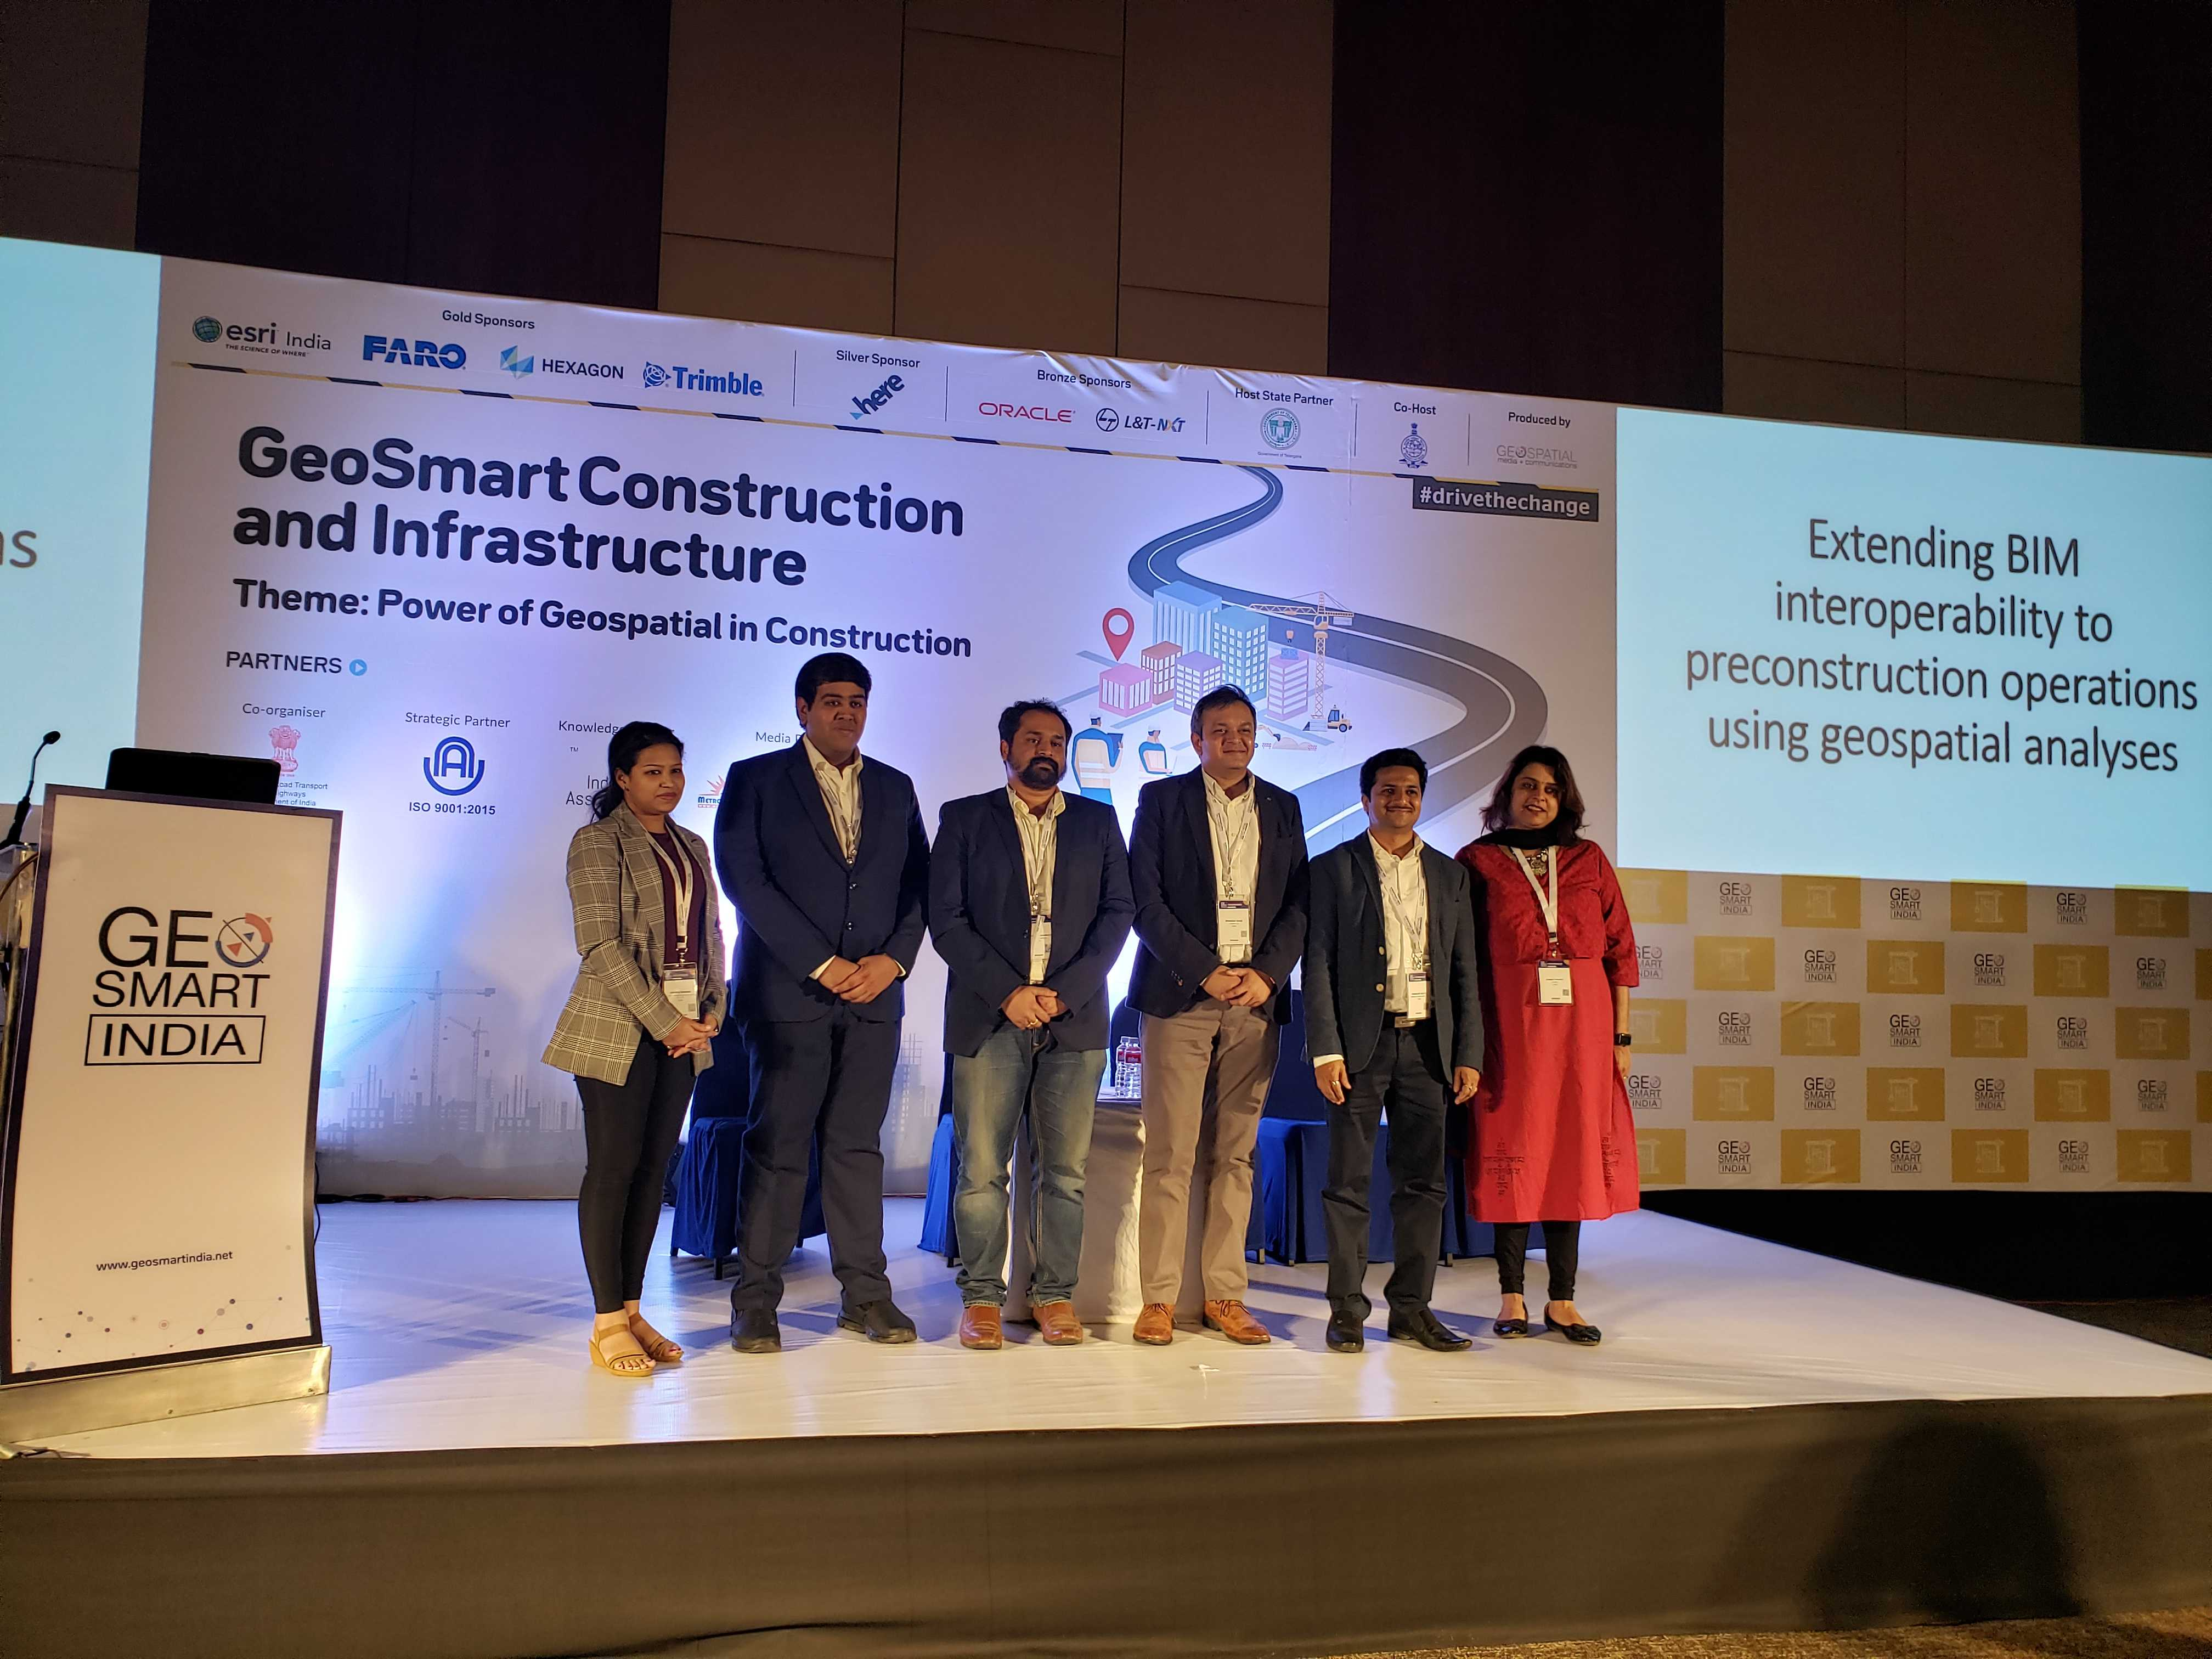 VisiLean CEO, Dr. Bhargav Dave, will be presenting our award-winning Digital Construction Management solution, that enables Integration of Lean workflows for delivering successful BIM projects, as a Session Speaker at the Conference.